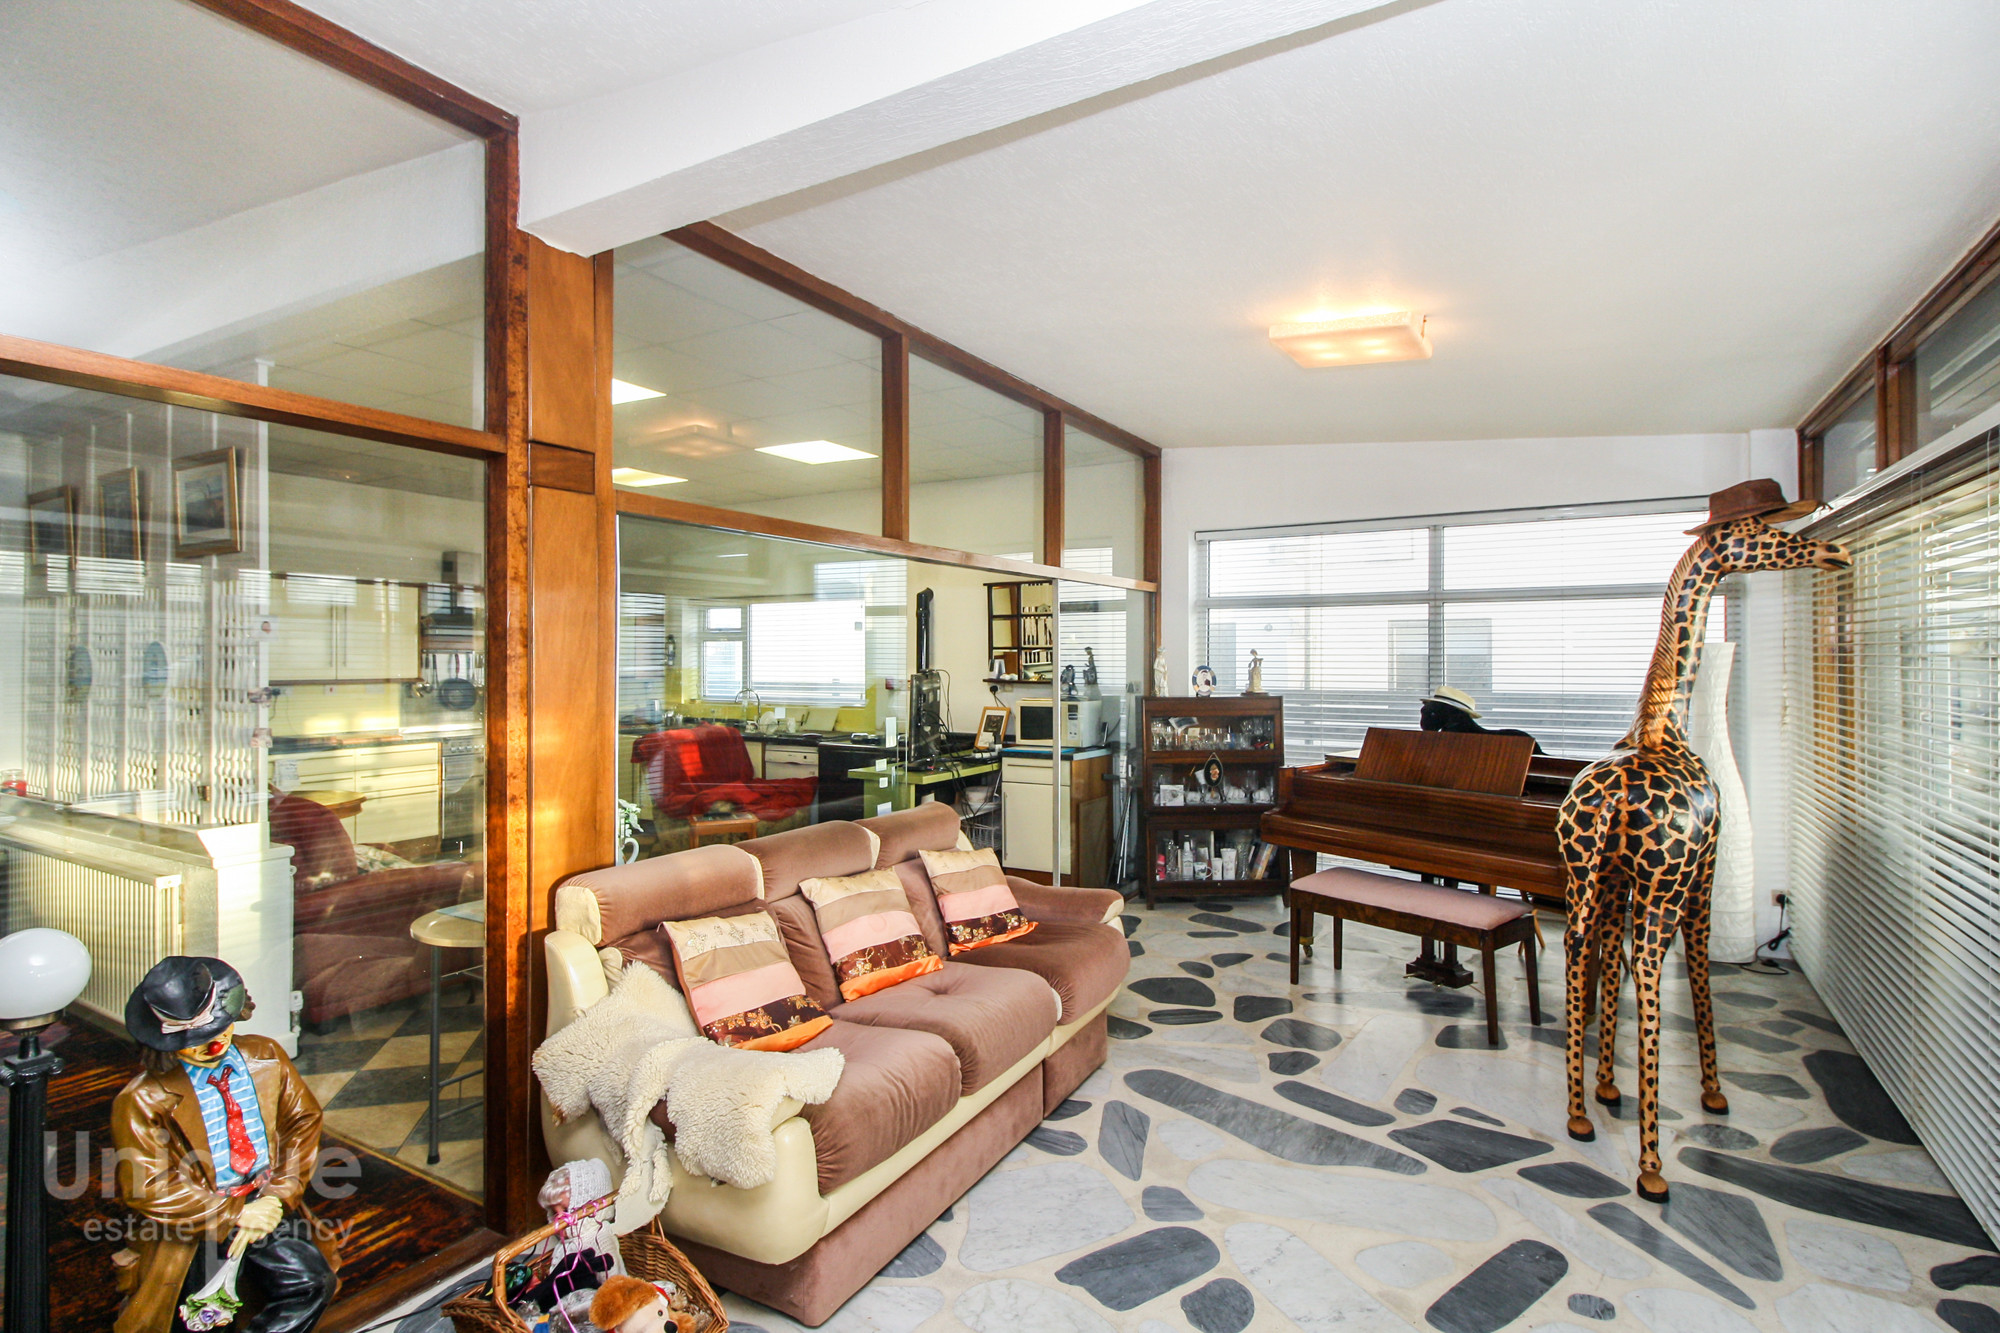 Seafront Bungalow With Eye Watering Charity Shop Las Vegas Interior Including Giant Giraffe Goes On Sale For 600 000